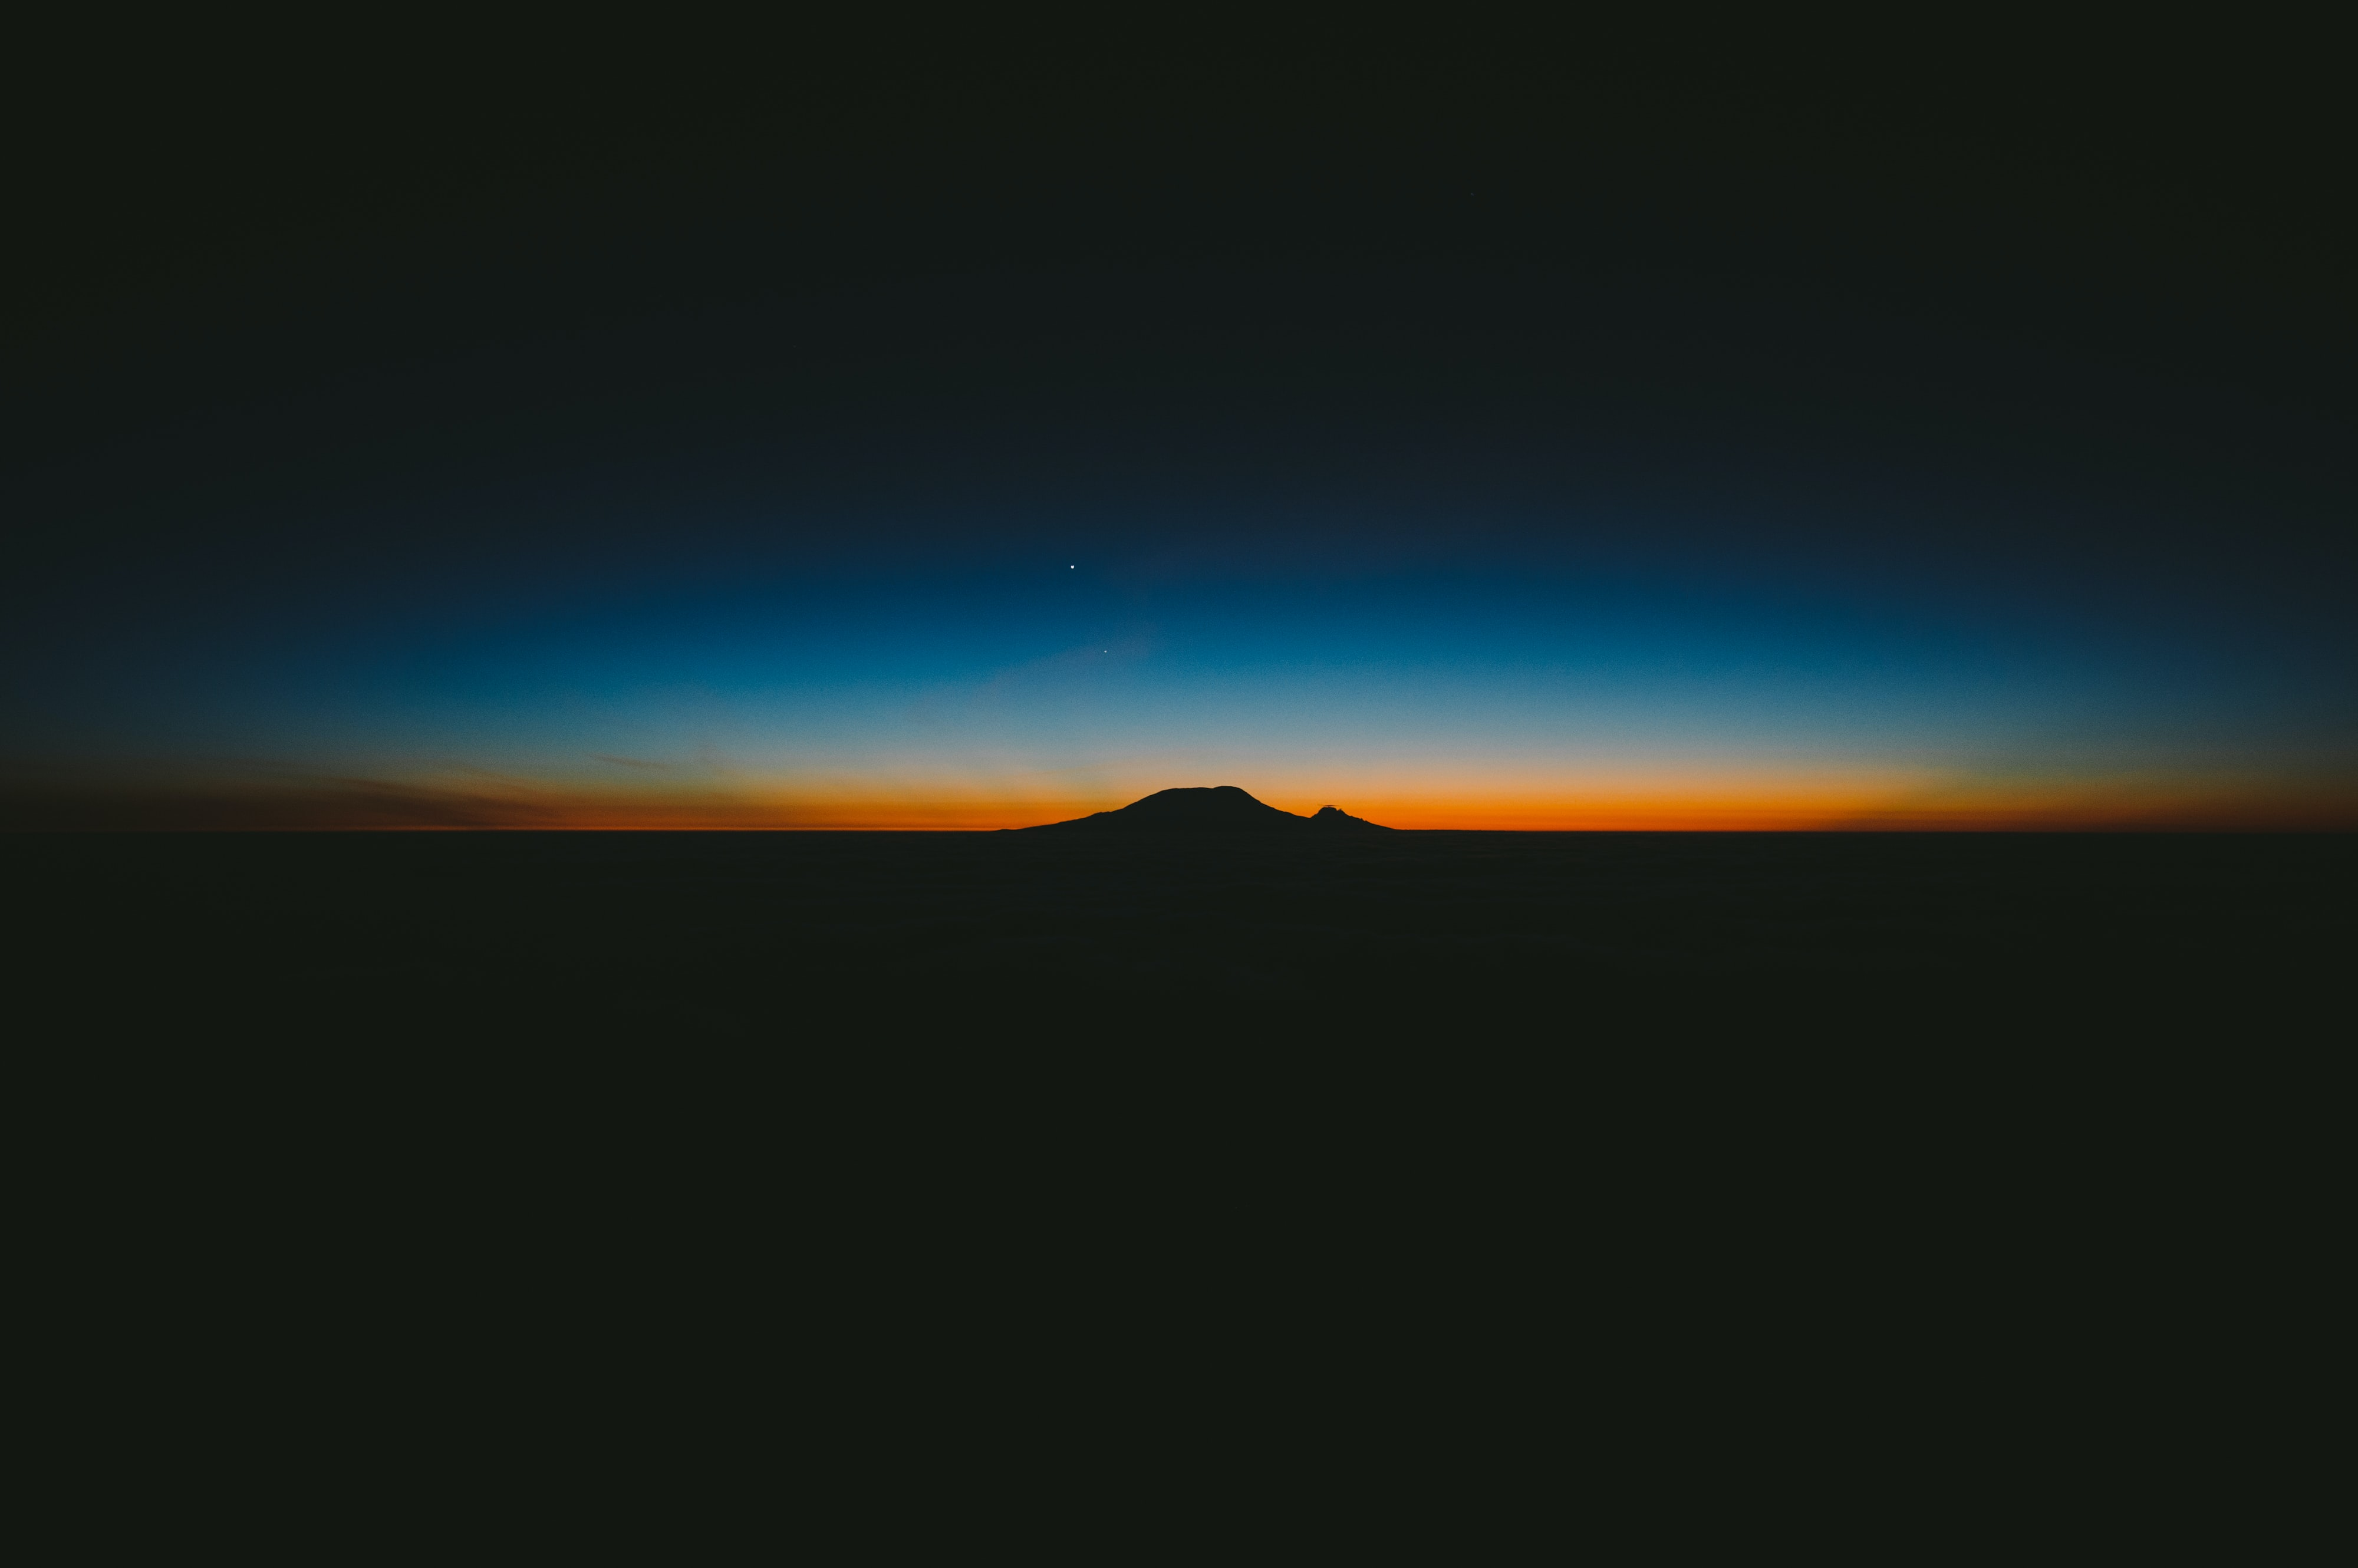 silhouette of mountain